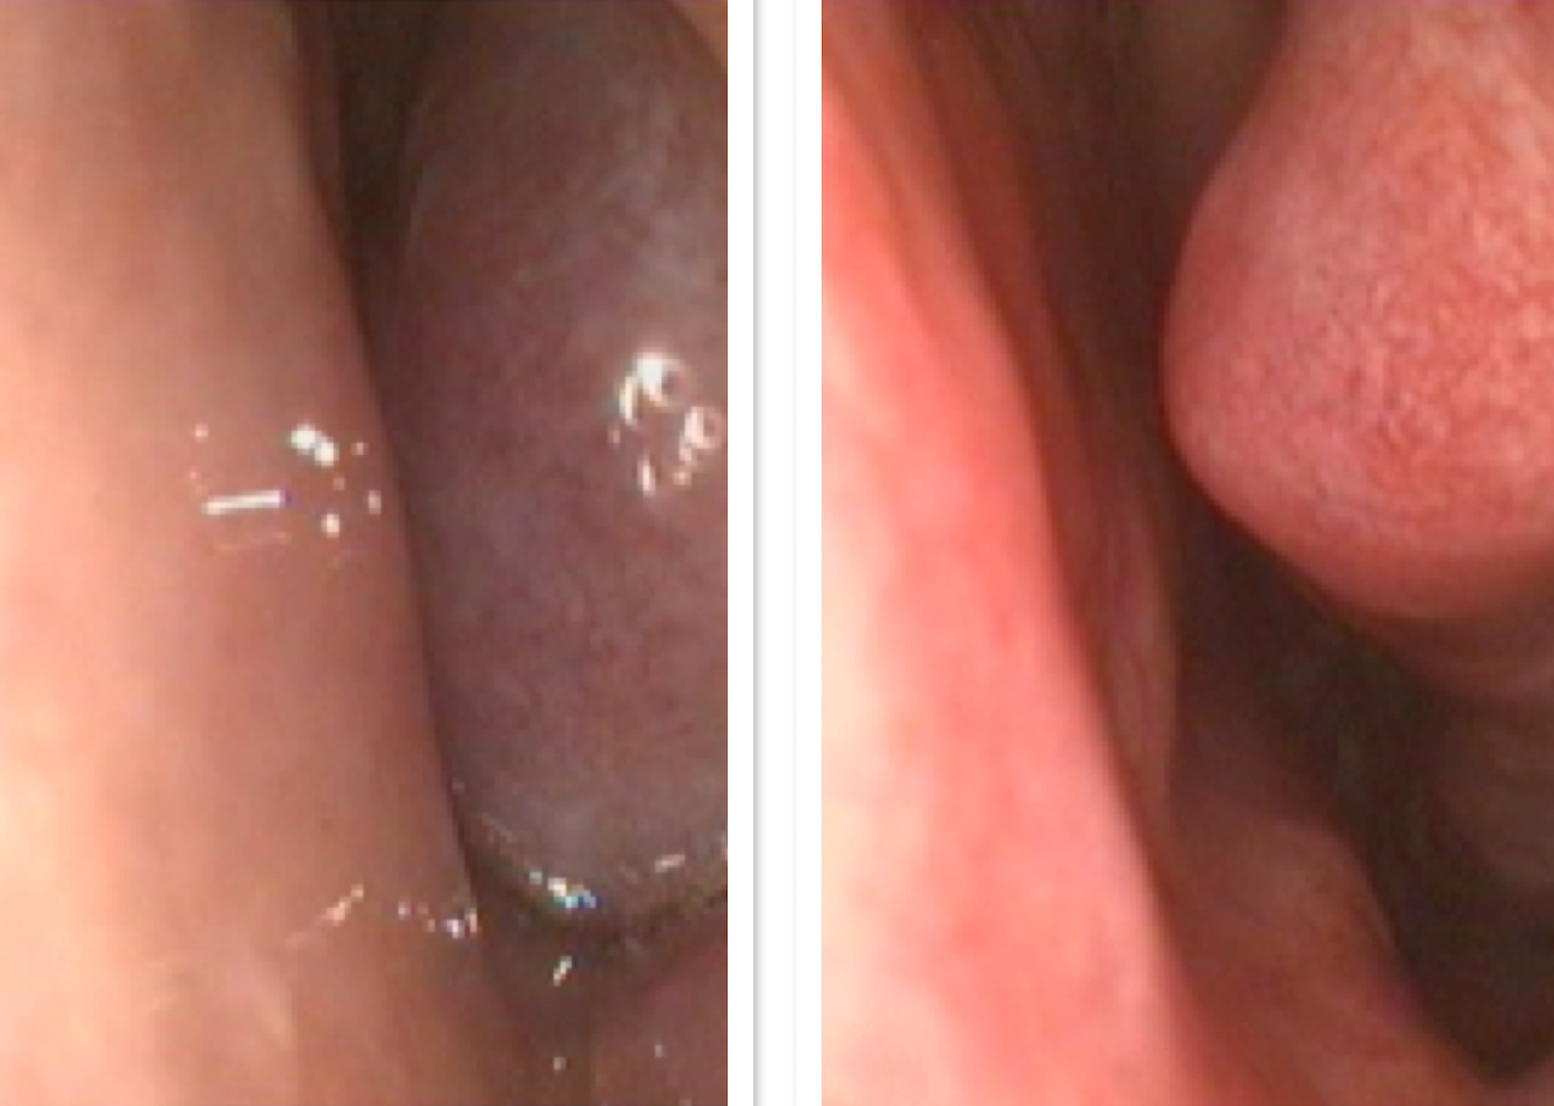 Figure above:  Left- Obstructing allergic turbinate with complete nasal airway obstruction. Right- The same patient after a good response to a nasal decongestant spray, with improved nasal airway. This effect can sometimes be achieved with a nasal spray such as Naosonex or Avamys. If the spray does not give this response, it can be achieved with surgery.